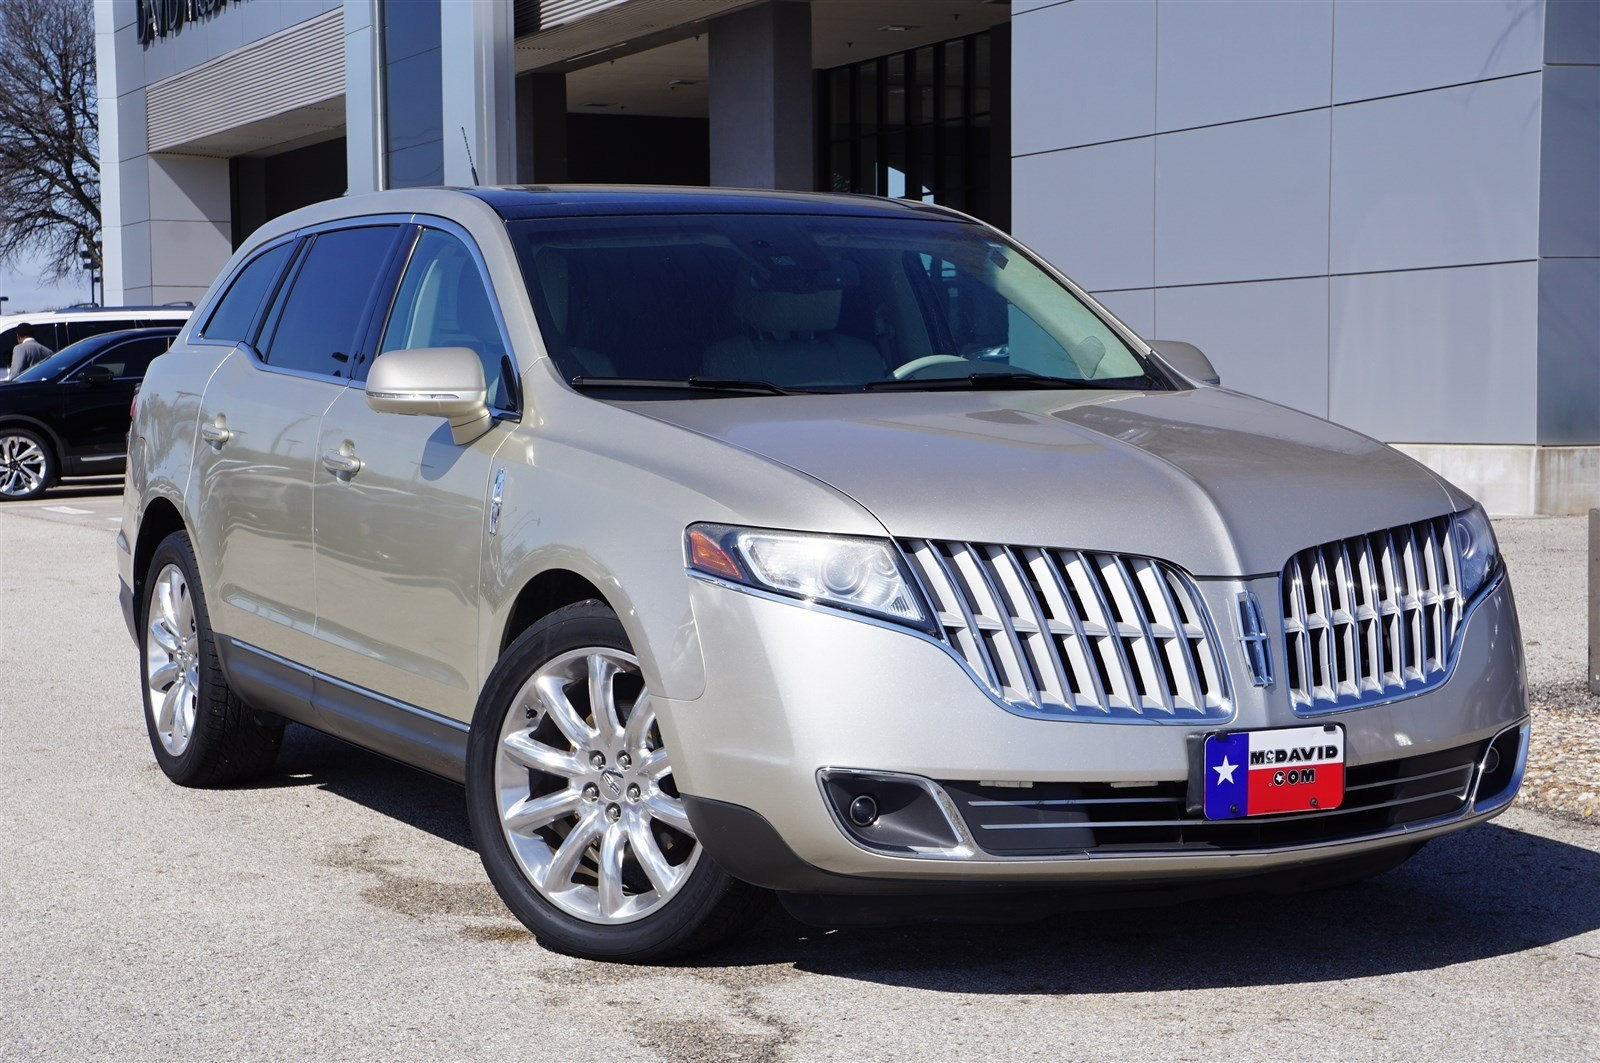 Photo Pre-Owned 2010 Lincoln MKT Wagon 6 in PlanoDallasFort Worth TX